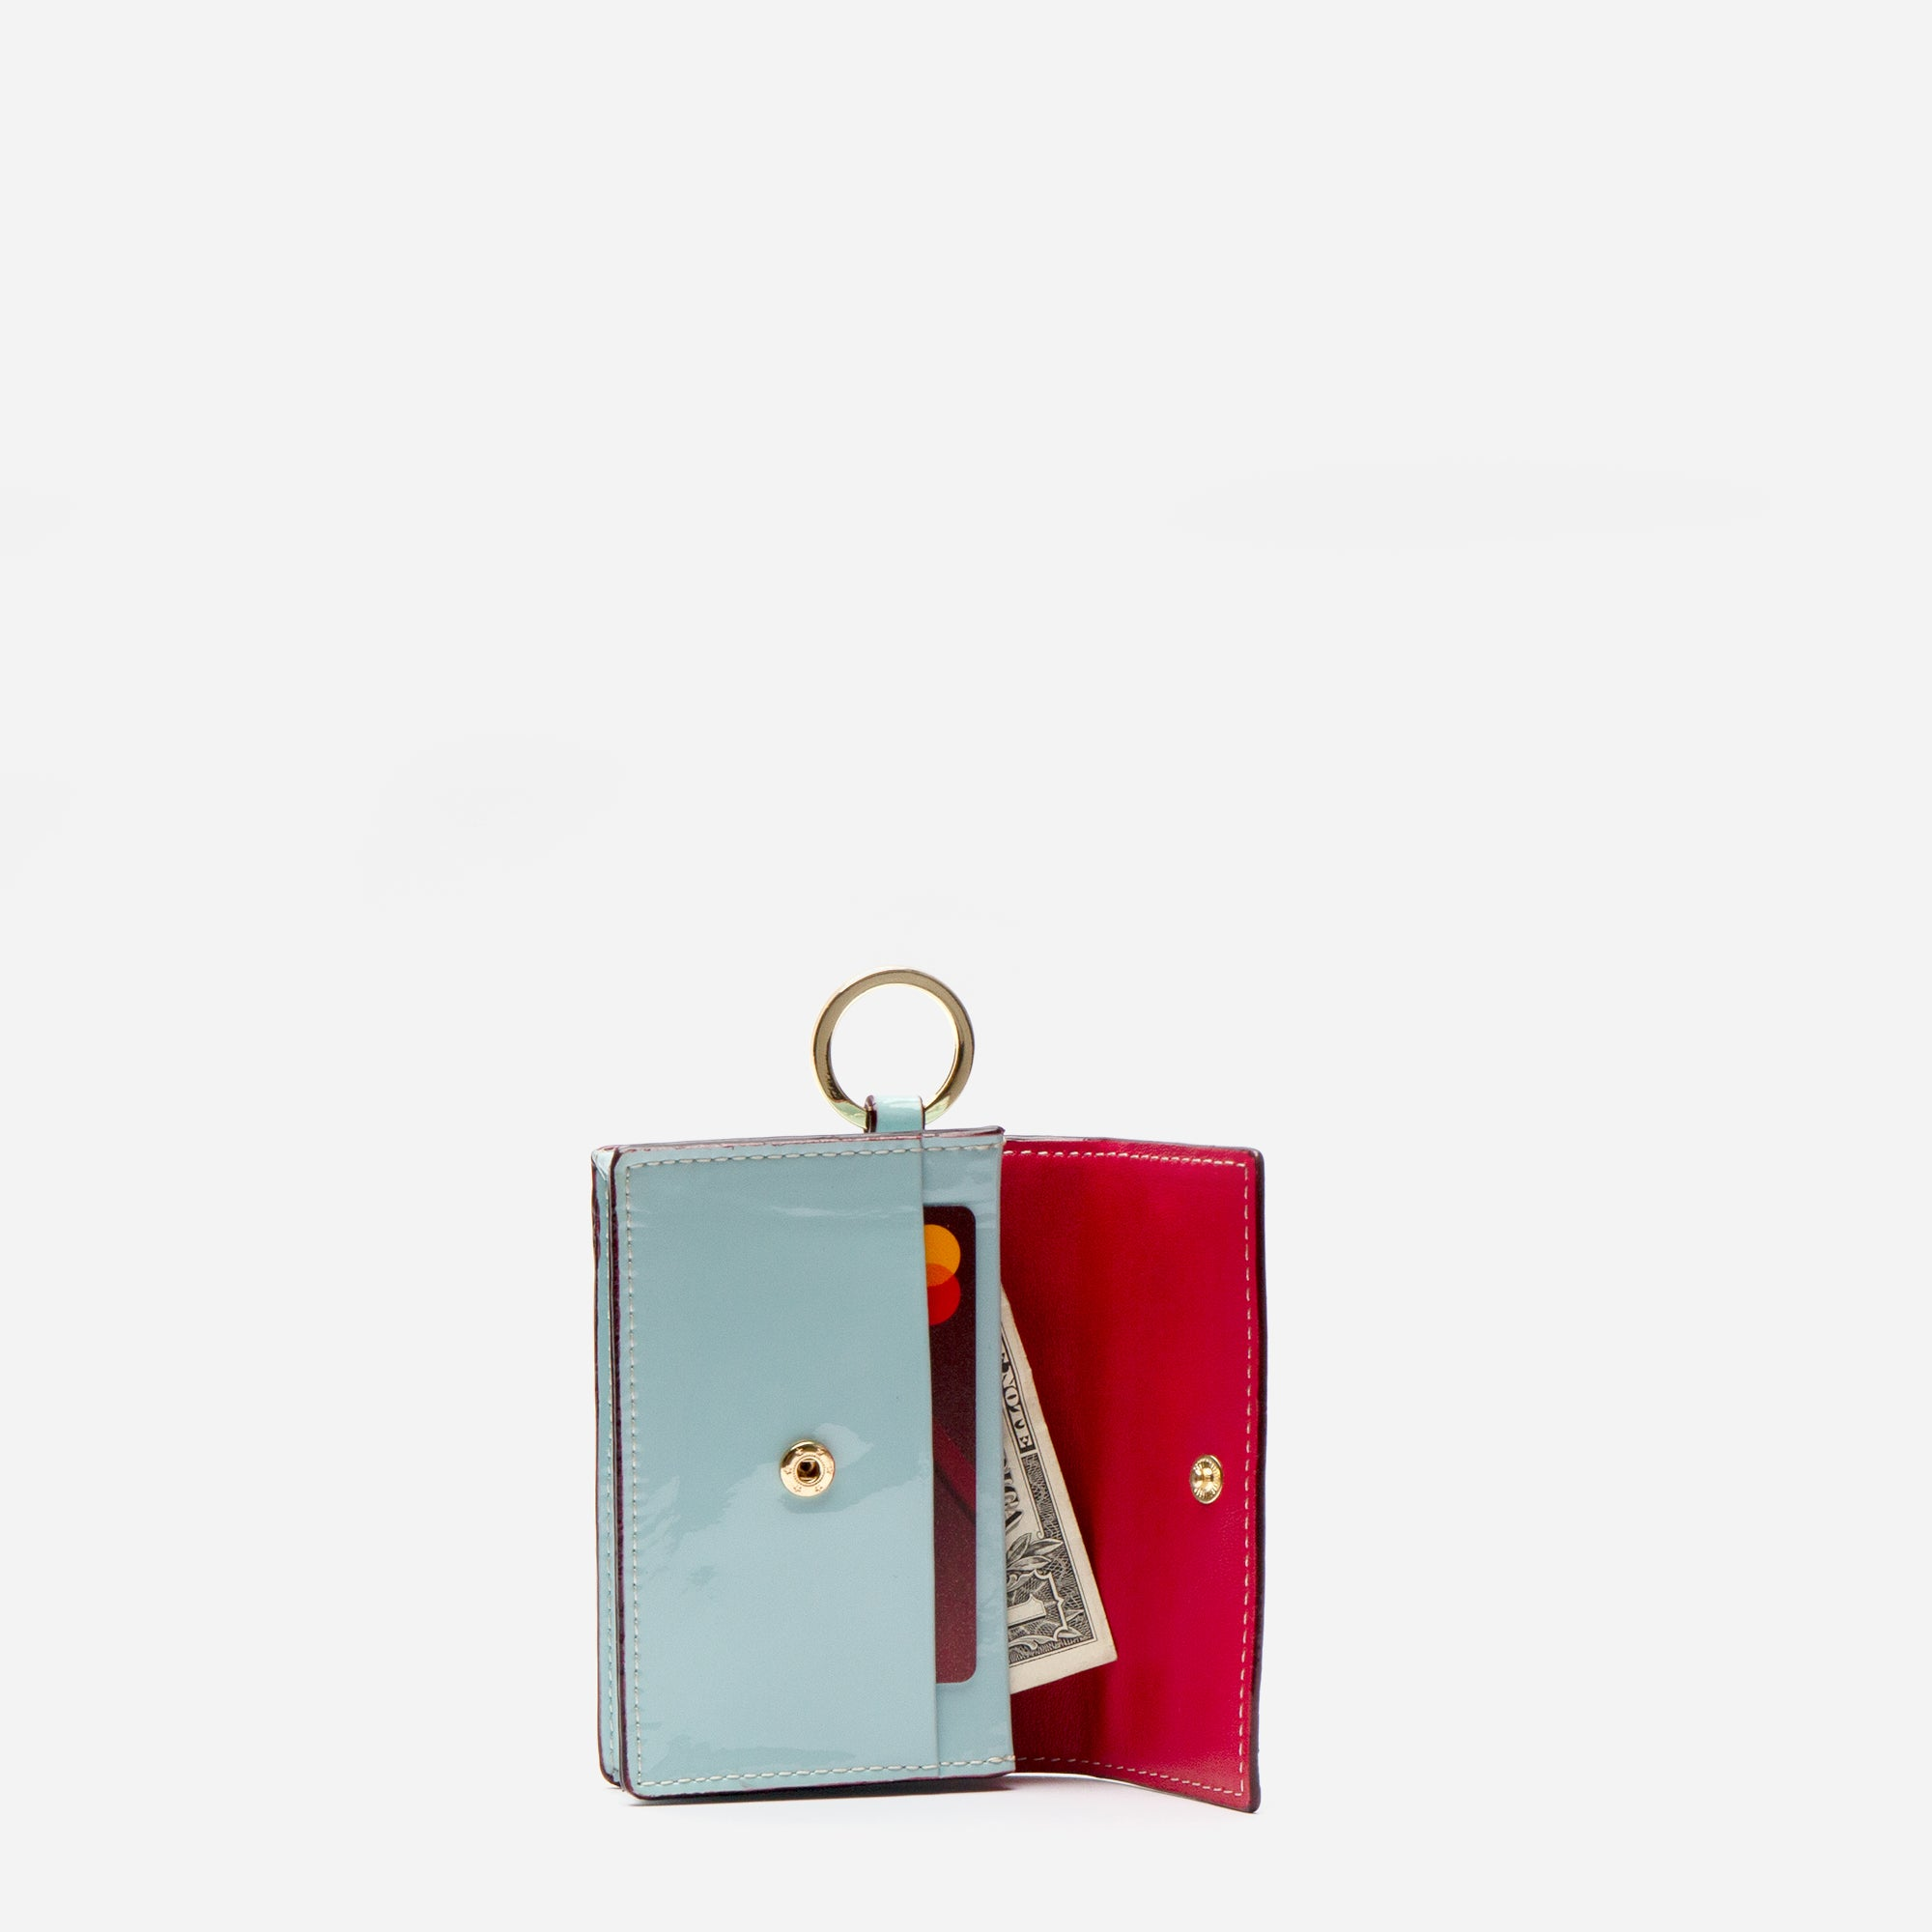 Key Fob Soft Patent Light Blue Red